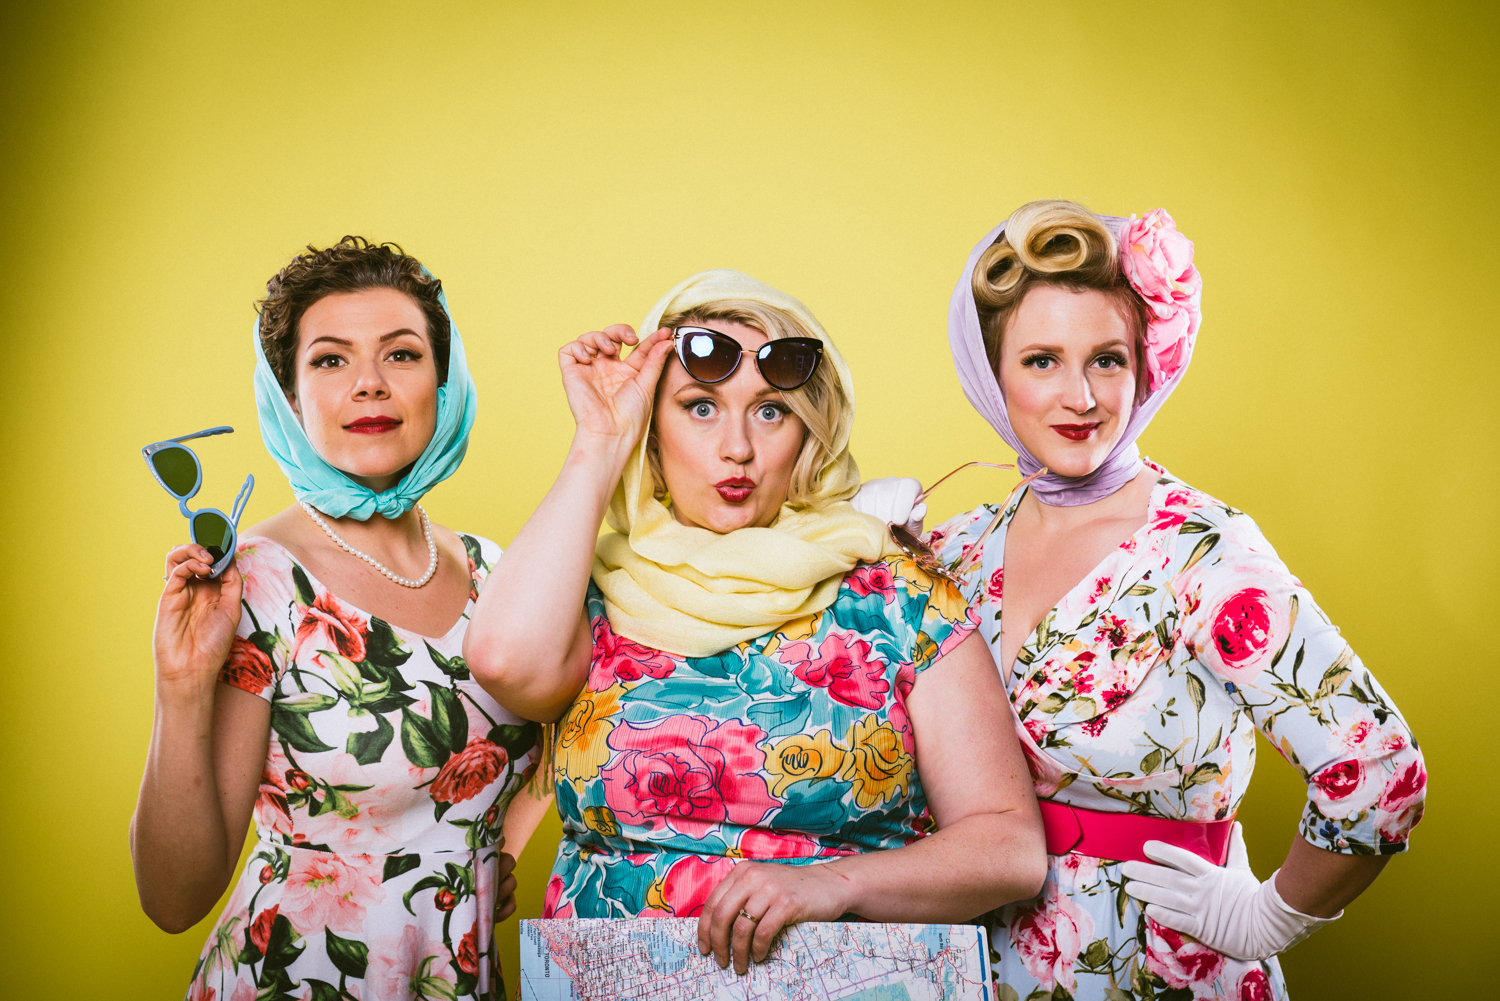 Photo by Matt Braden Photography. Alexis, Farideh, and Allyson are wild about retro style and their photos appear in newspapers, magazines, and blogs across Canada and the US.